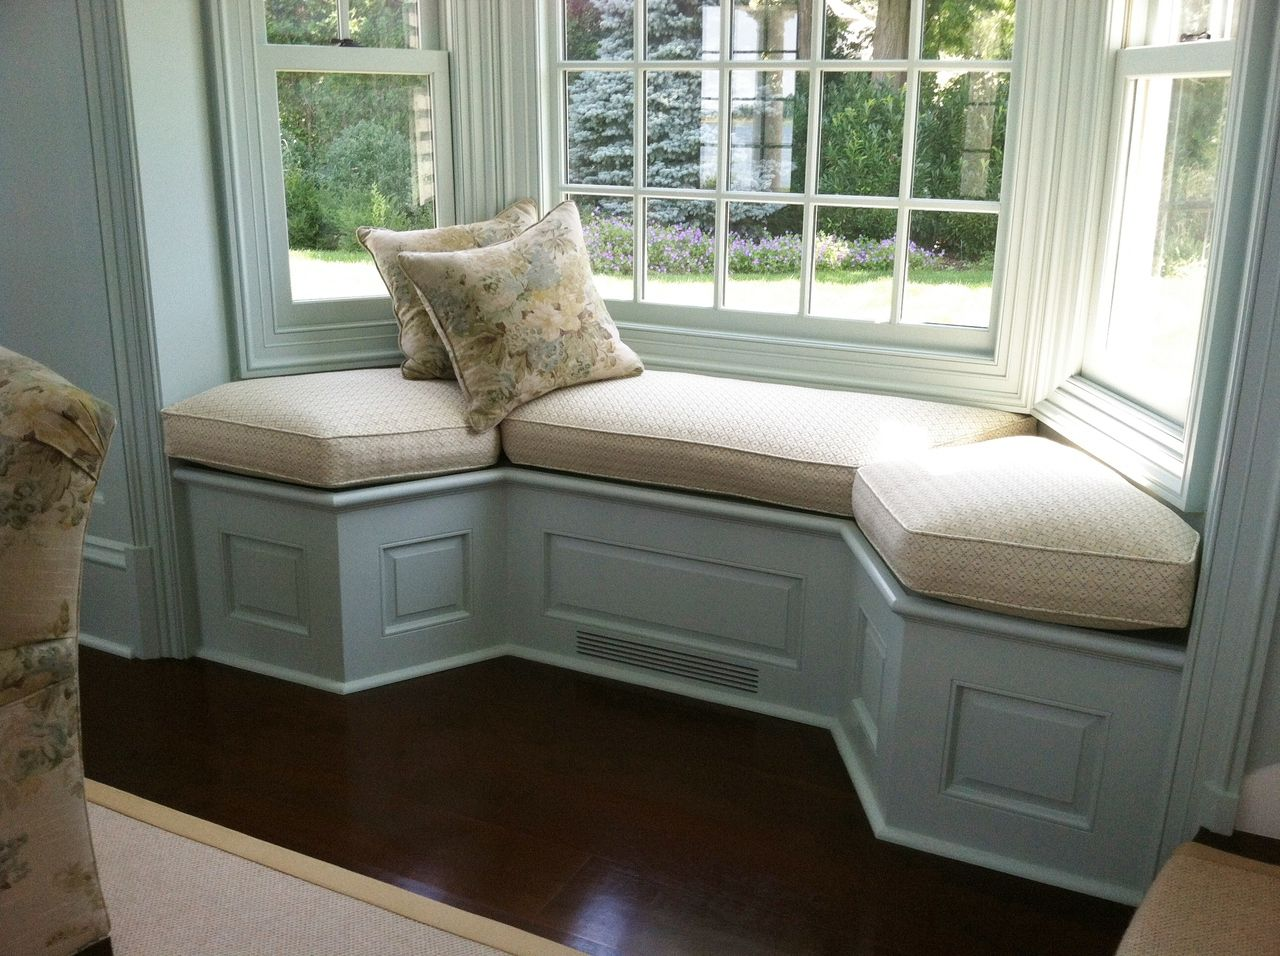 Country Window Seat Cushion Bench Seating Kitchen Window Seat Kitchen Bay Window Seat